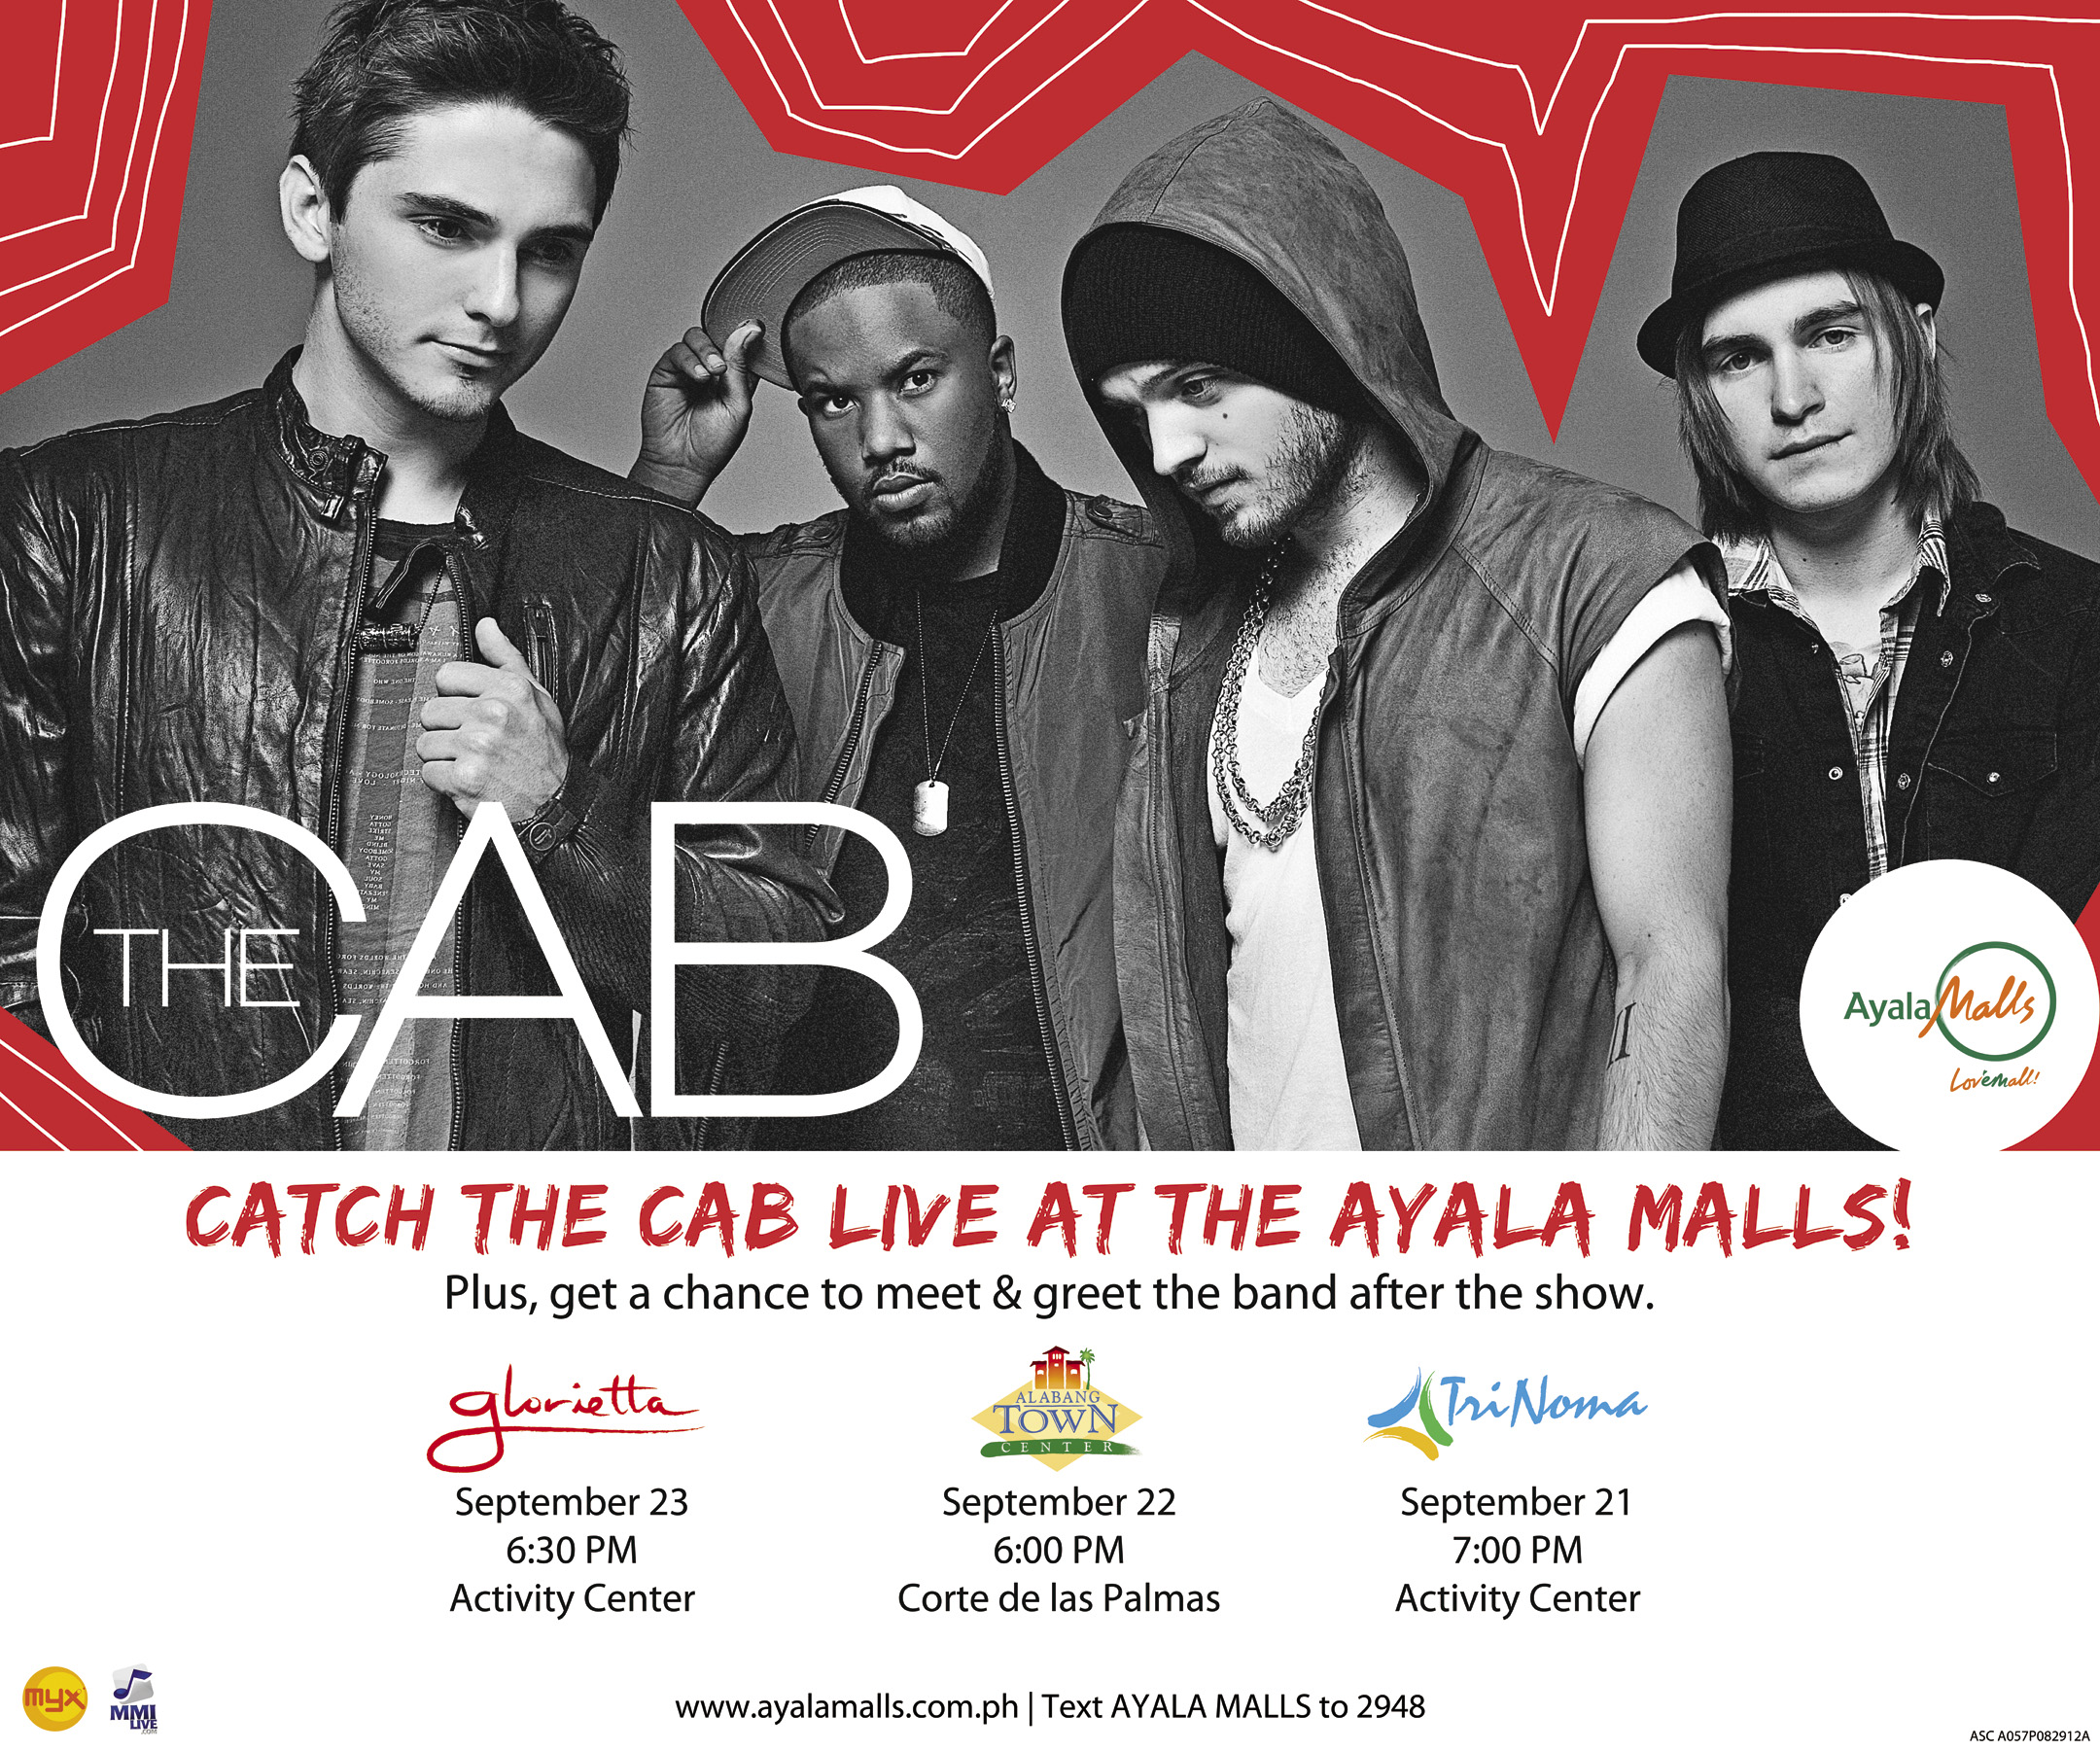 The Cab live at the Ayala Malls!